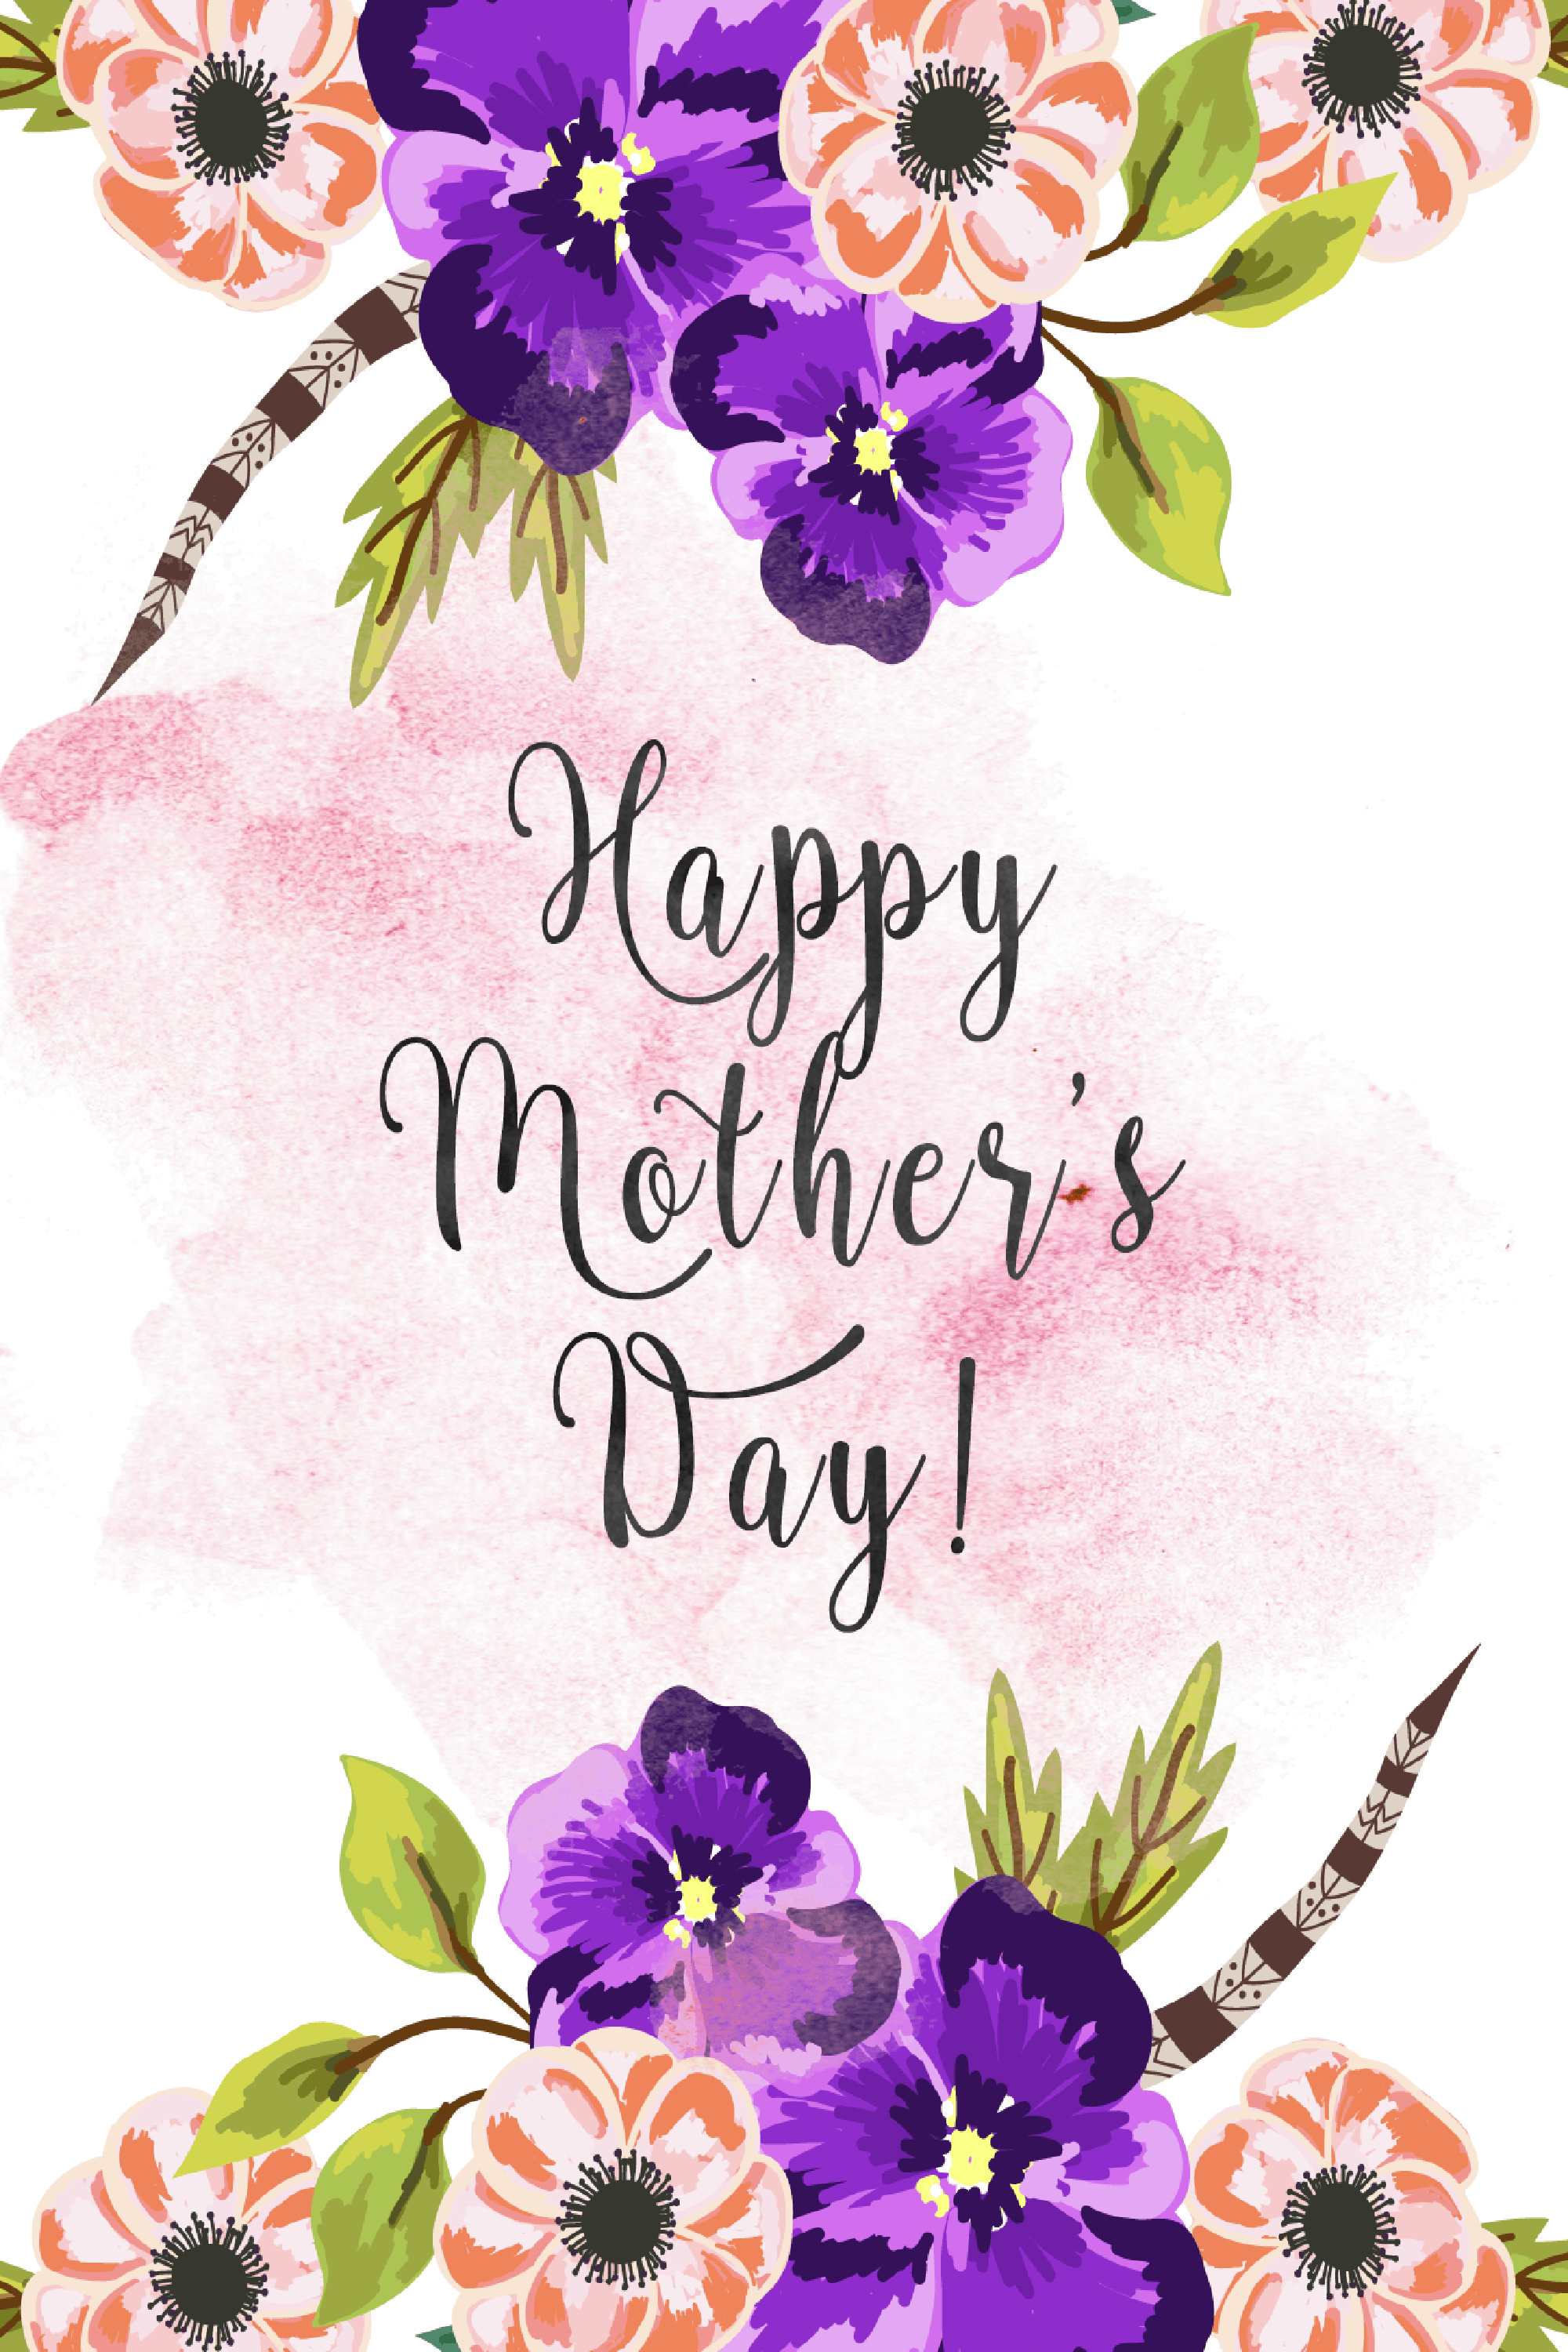 20 Cute Free Printable Mothers Day Cards - Mom Cards You Can Print - Free Printable Mothers Day Cards No Download